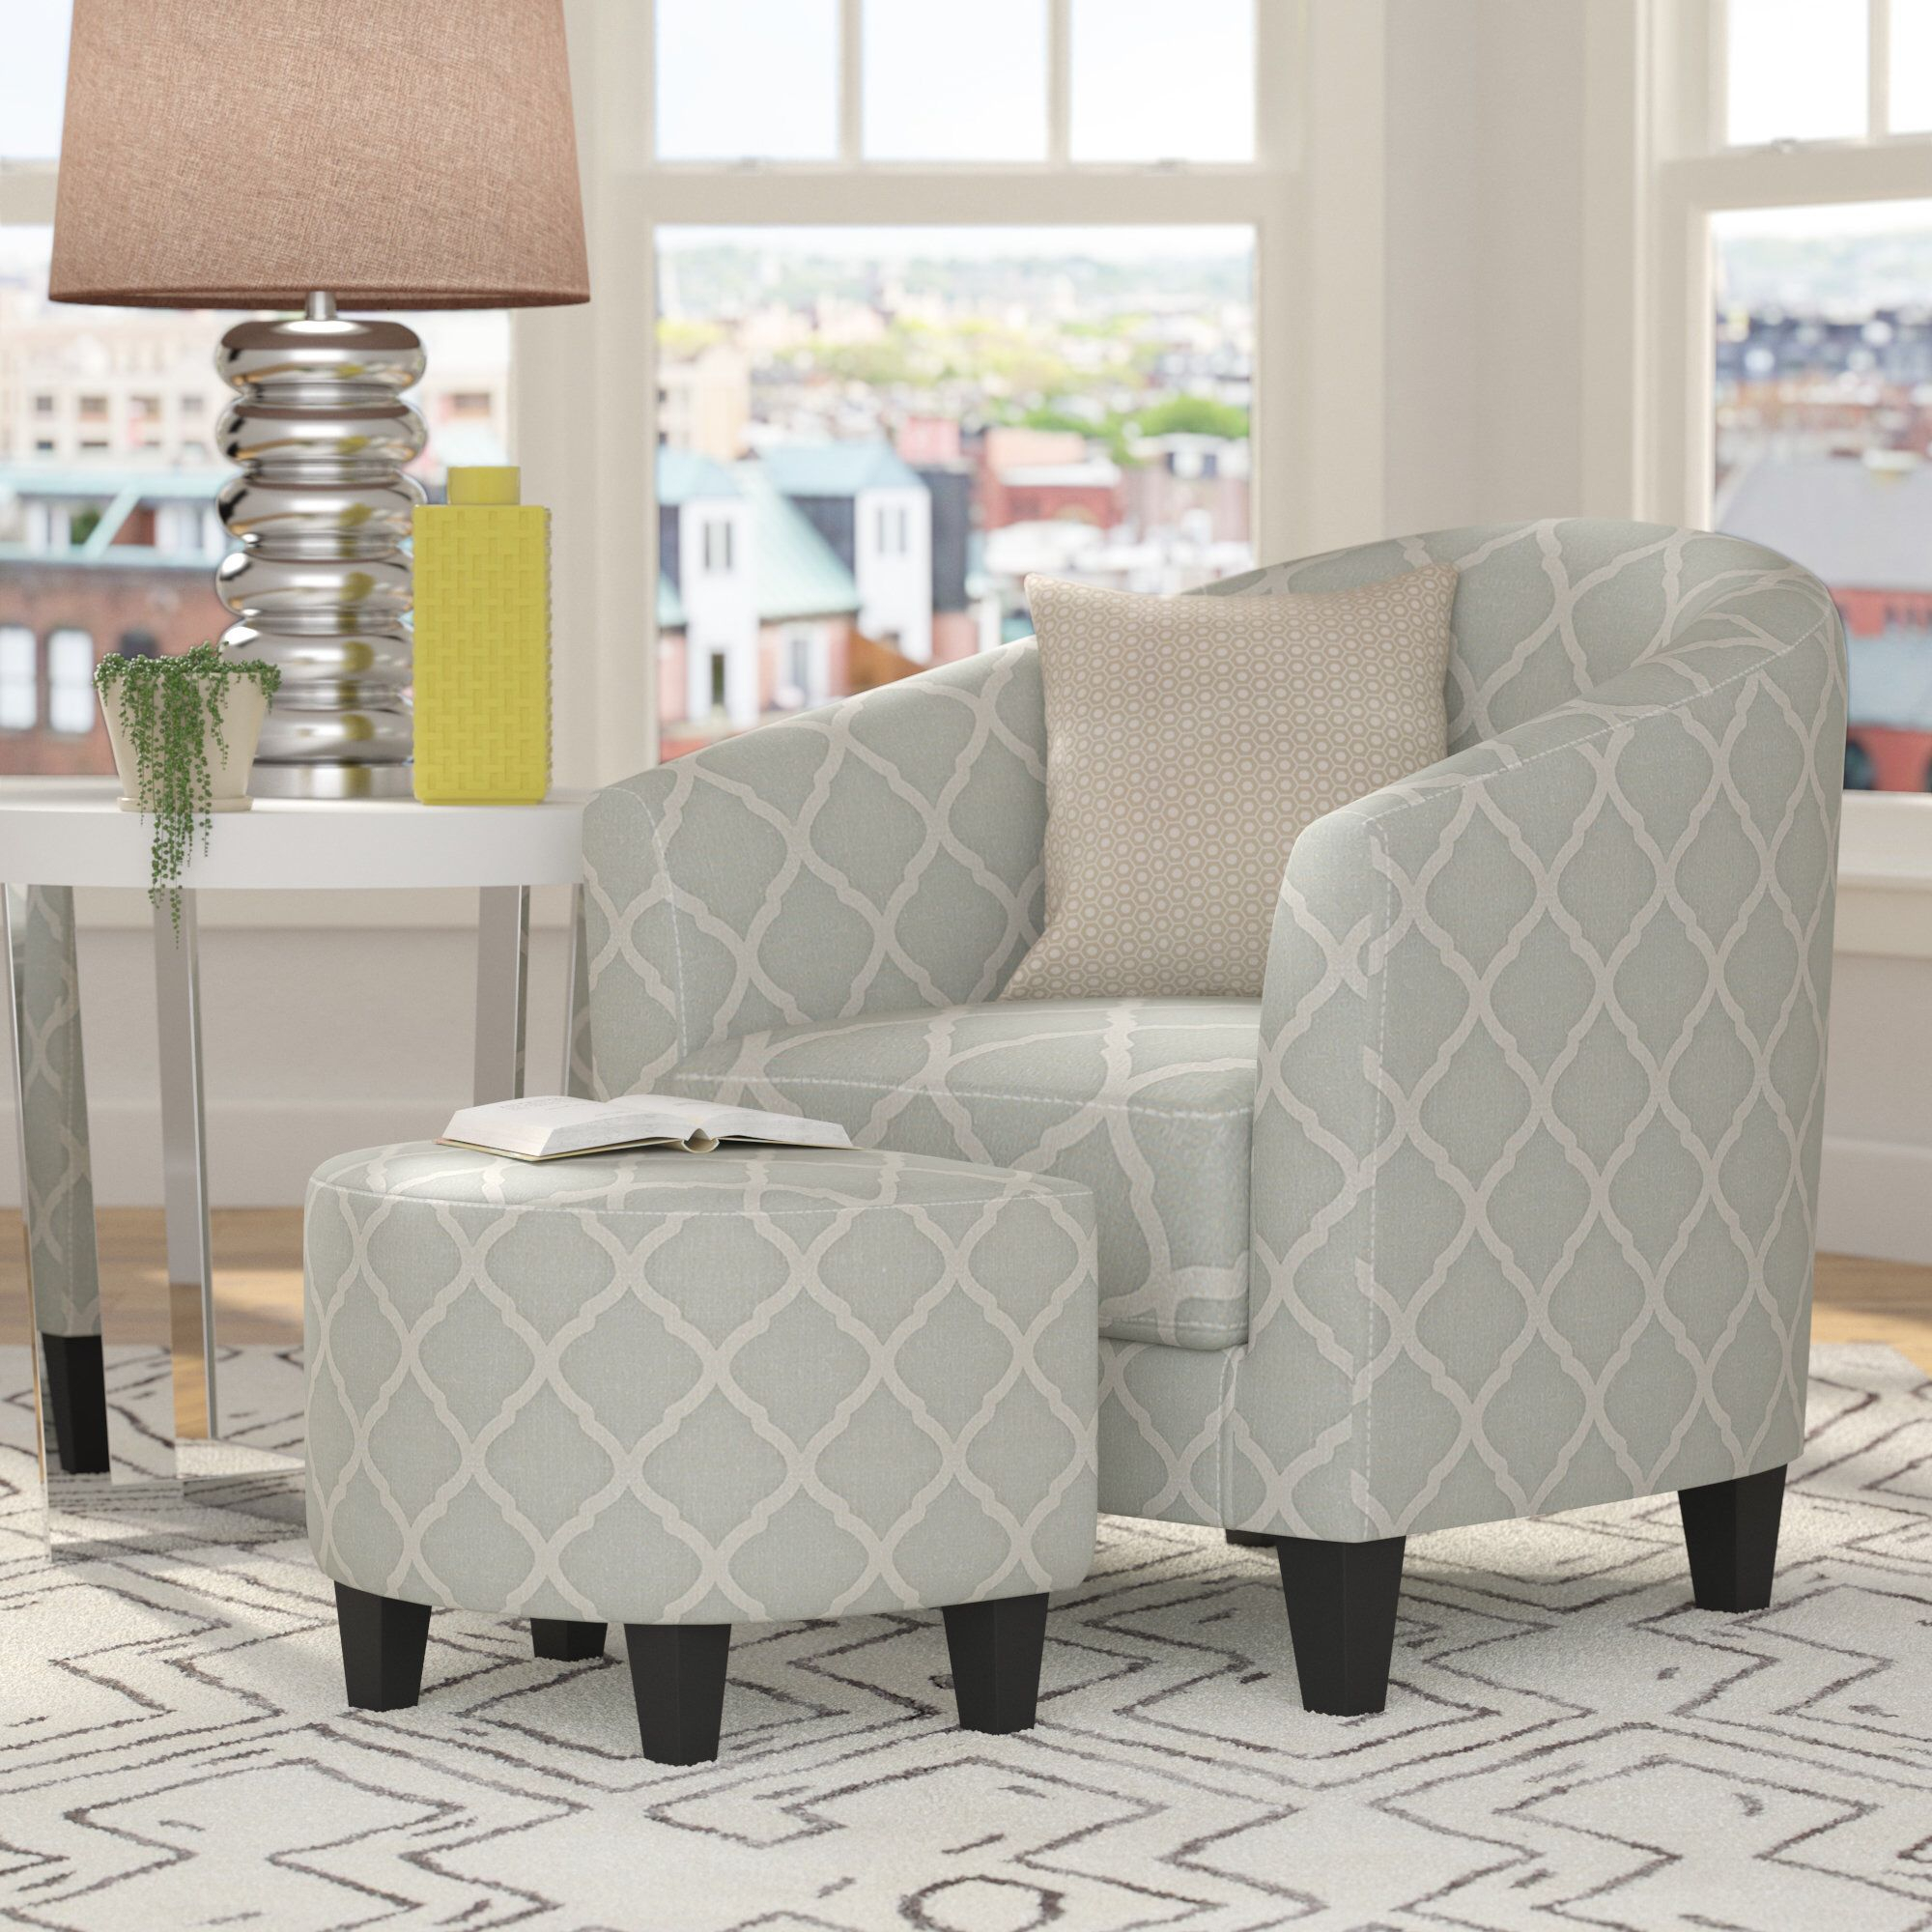 Pin On <3 Apartment Decorating Pertaining To Wainfleet Armchairs (Photo 11 of 15)